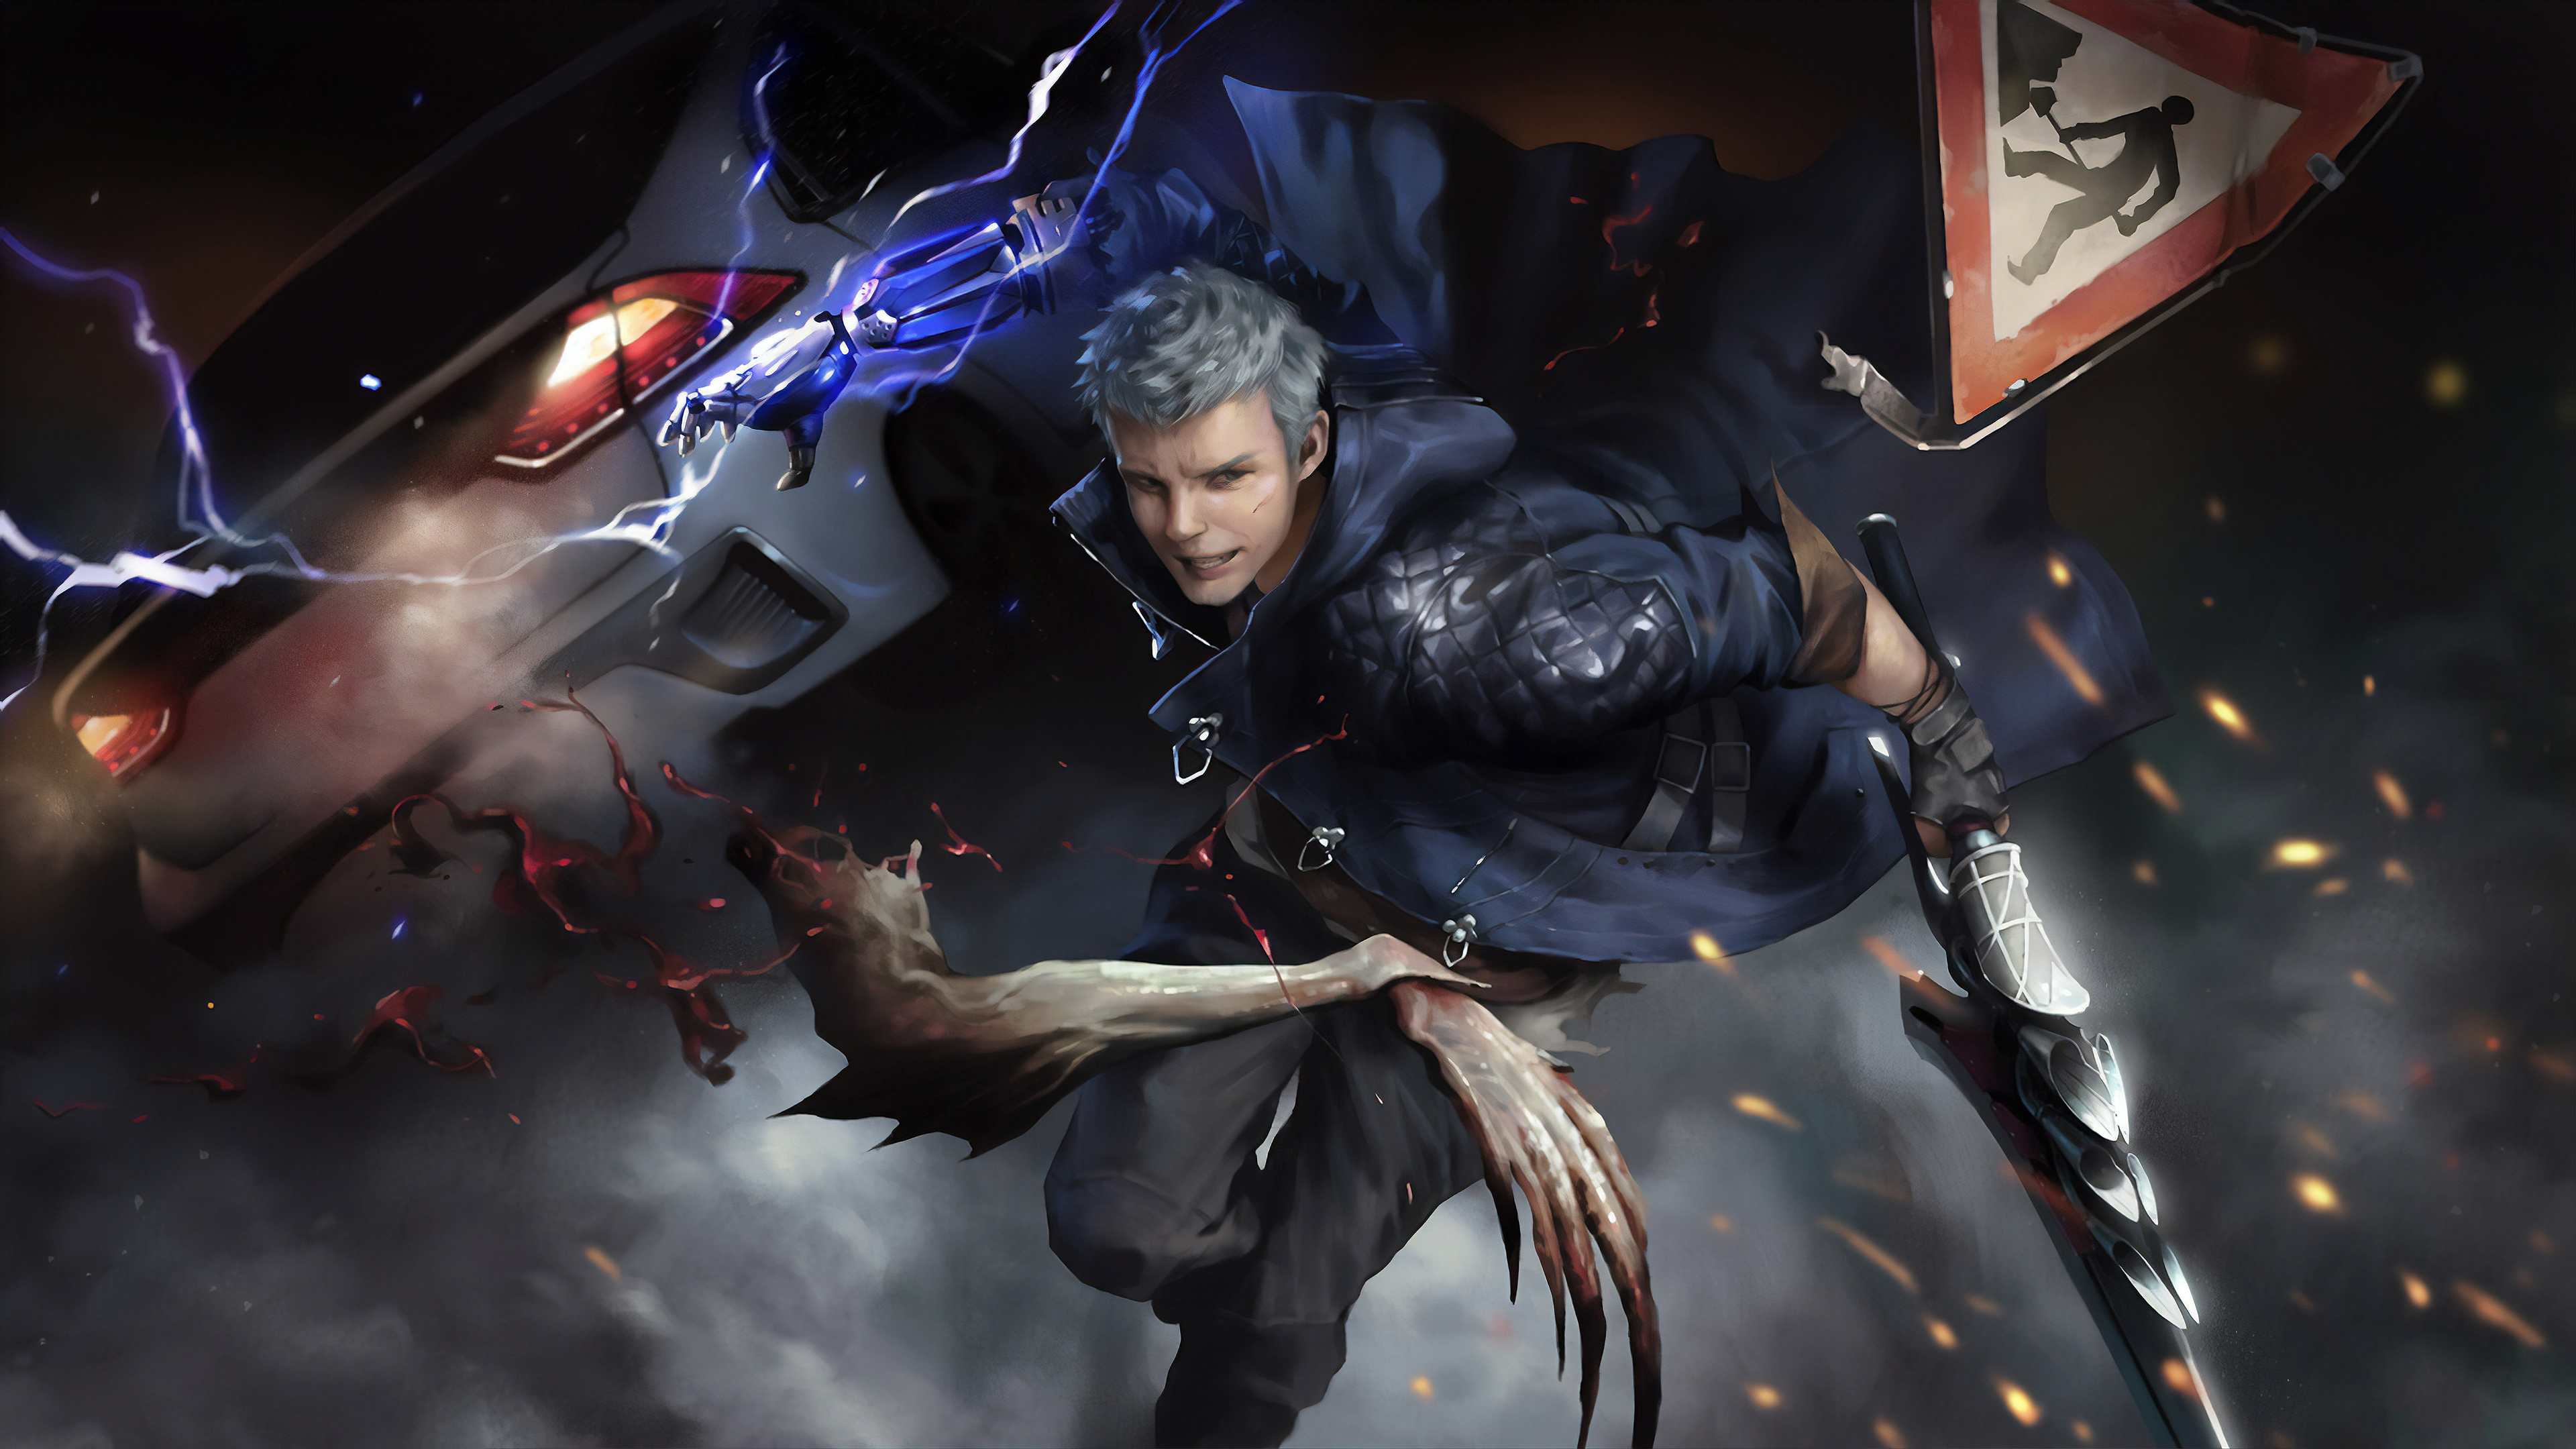 1600x1200 Nero In Devil May Cry 5 4k Art 1600x1200